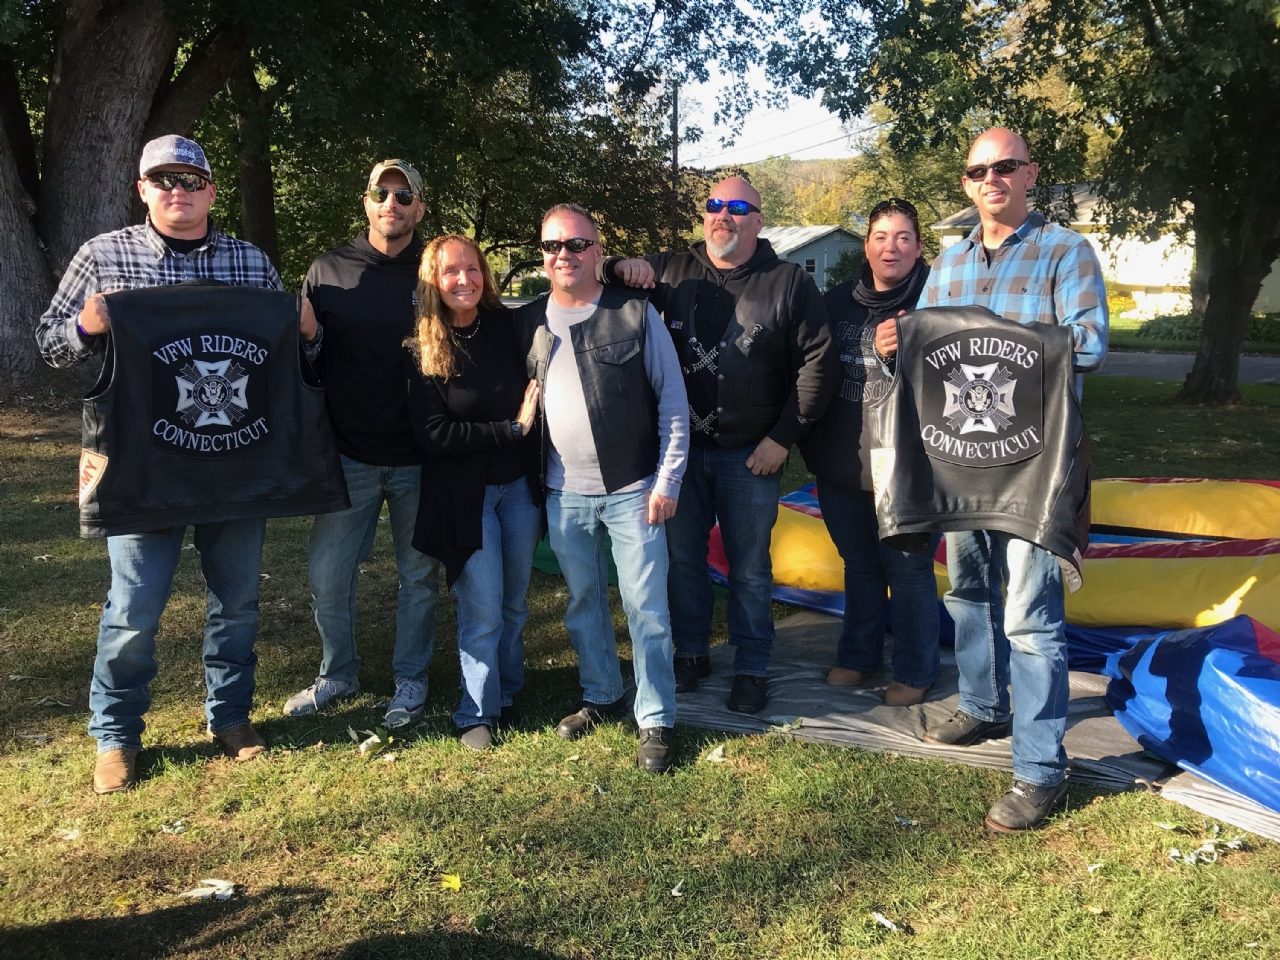 Jason D. Lewis Brookfield Memorial Post 10201 VFW Riders group